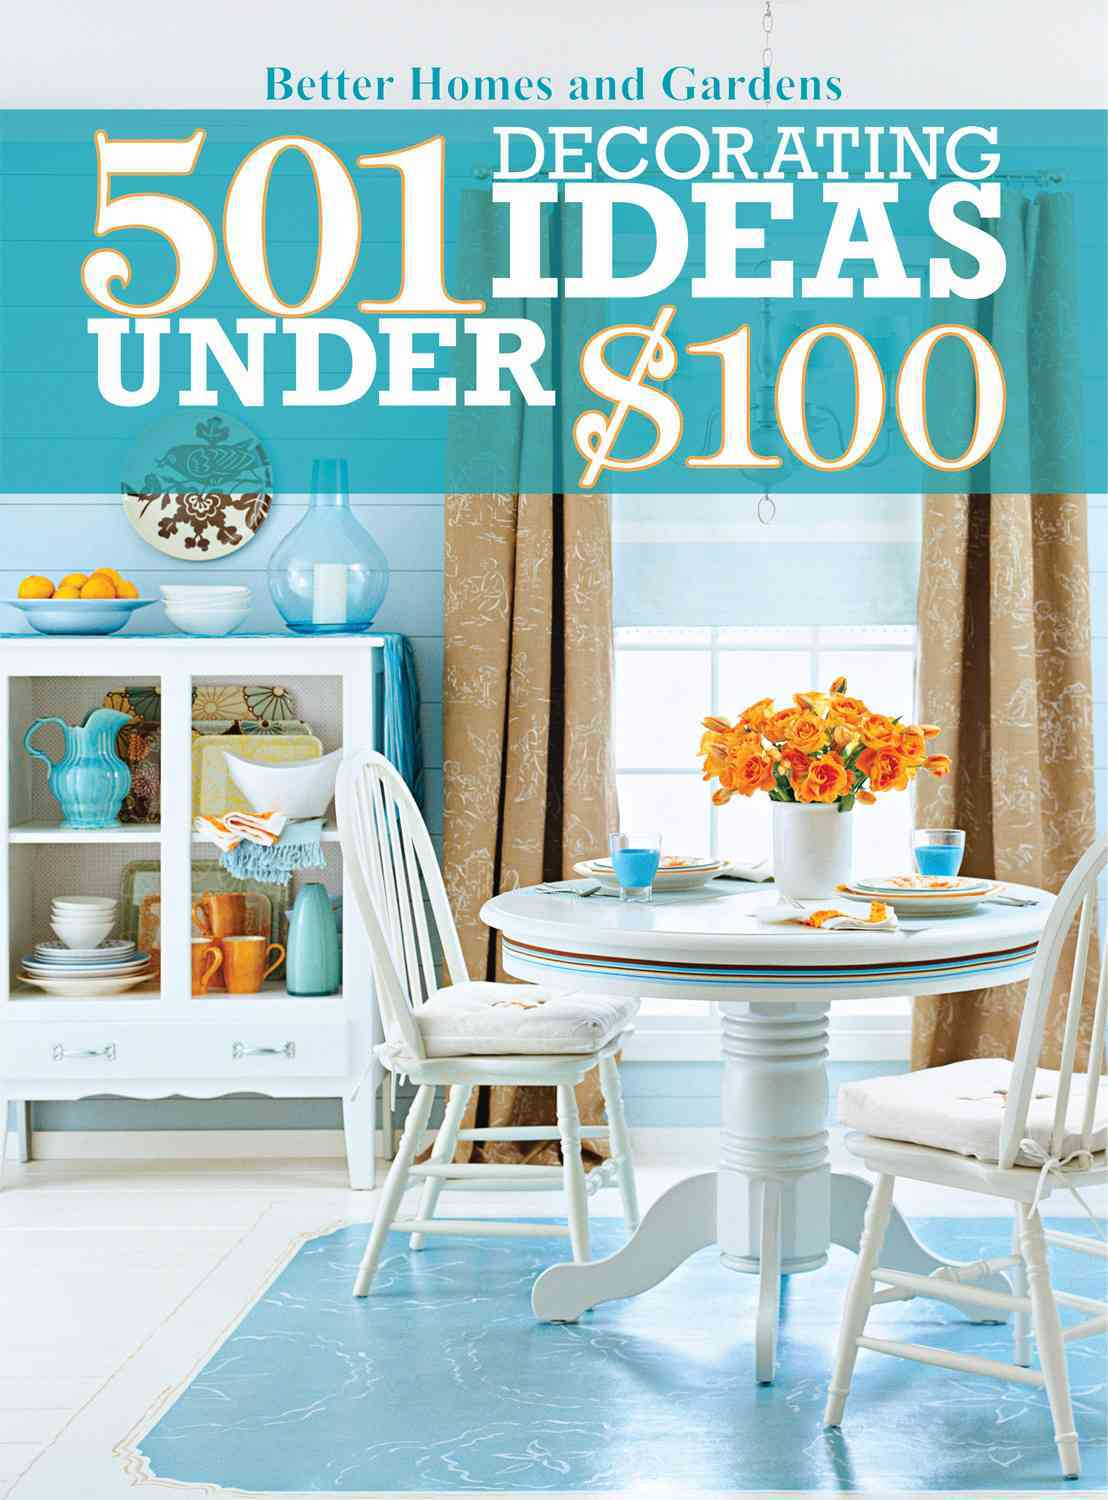 501 Decorating Ideas Under $100 By John Wiley & Sons (COR)